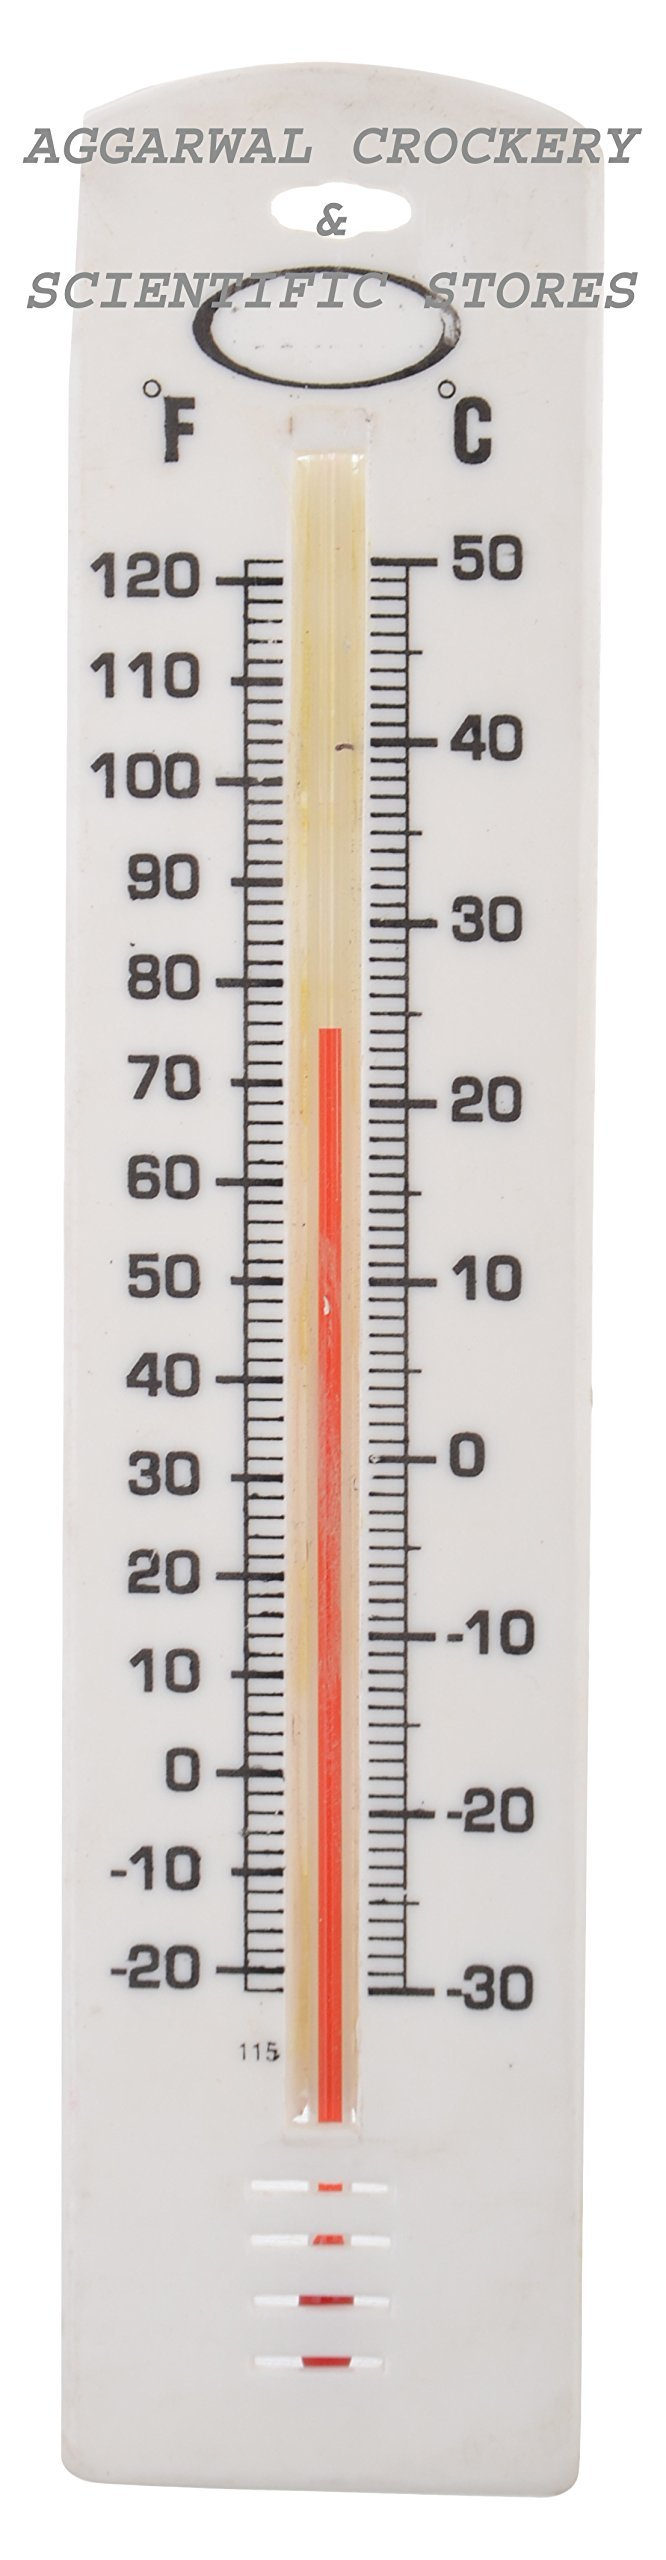 Aggarwal Crockery & Scientific Stores Room Thermometer